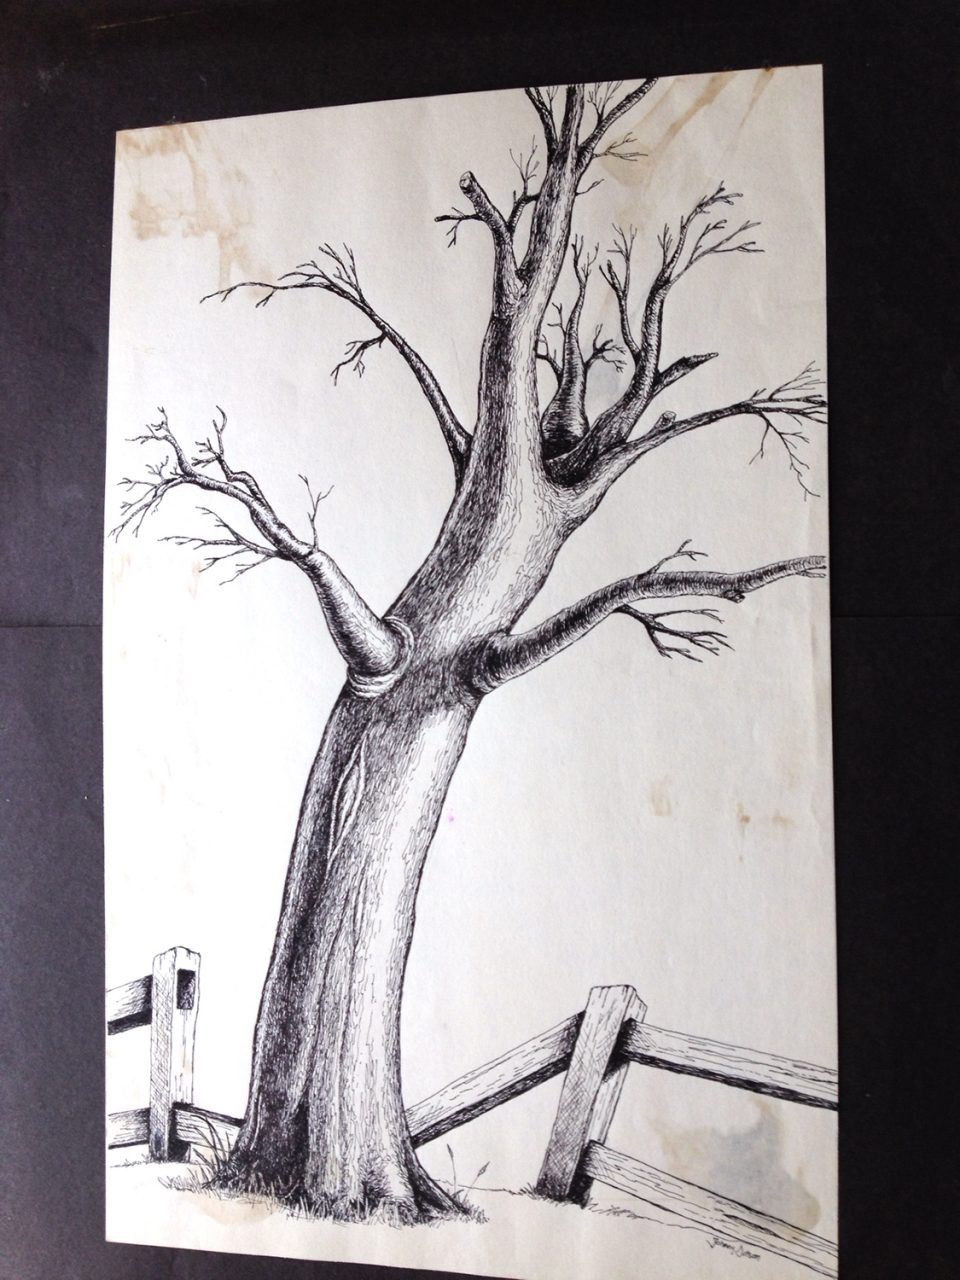 Ink drawing of a barren tree and wooden fence, completed when I was in middle school